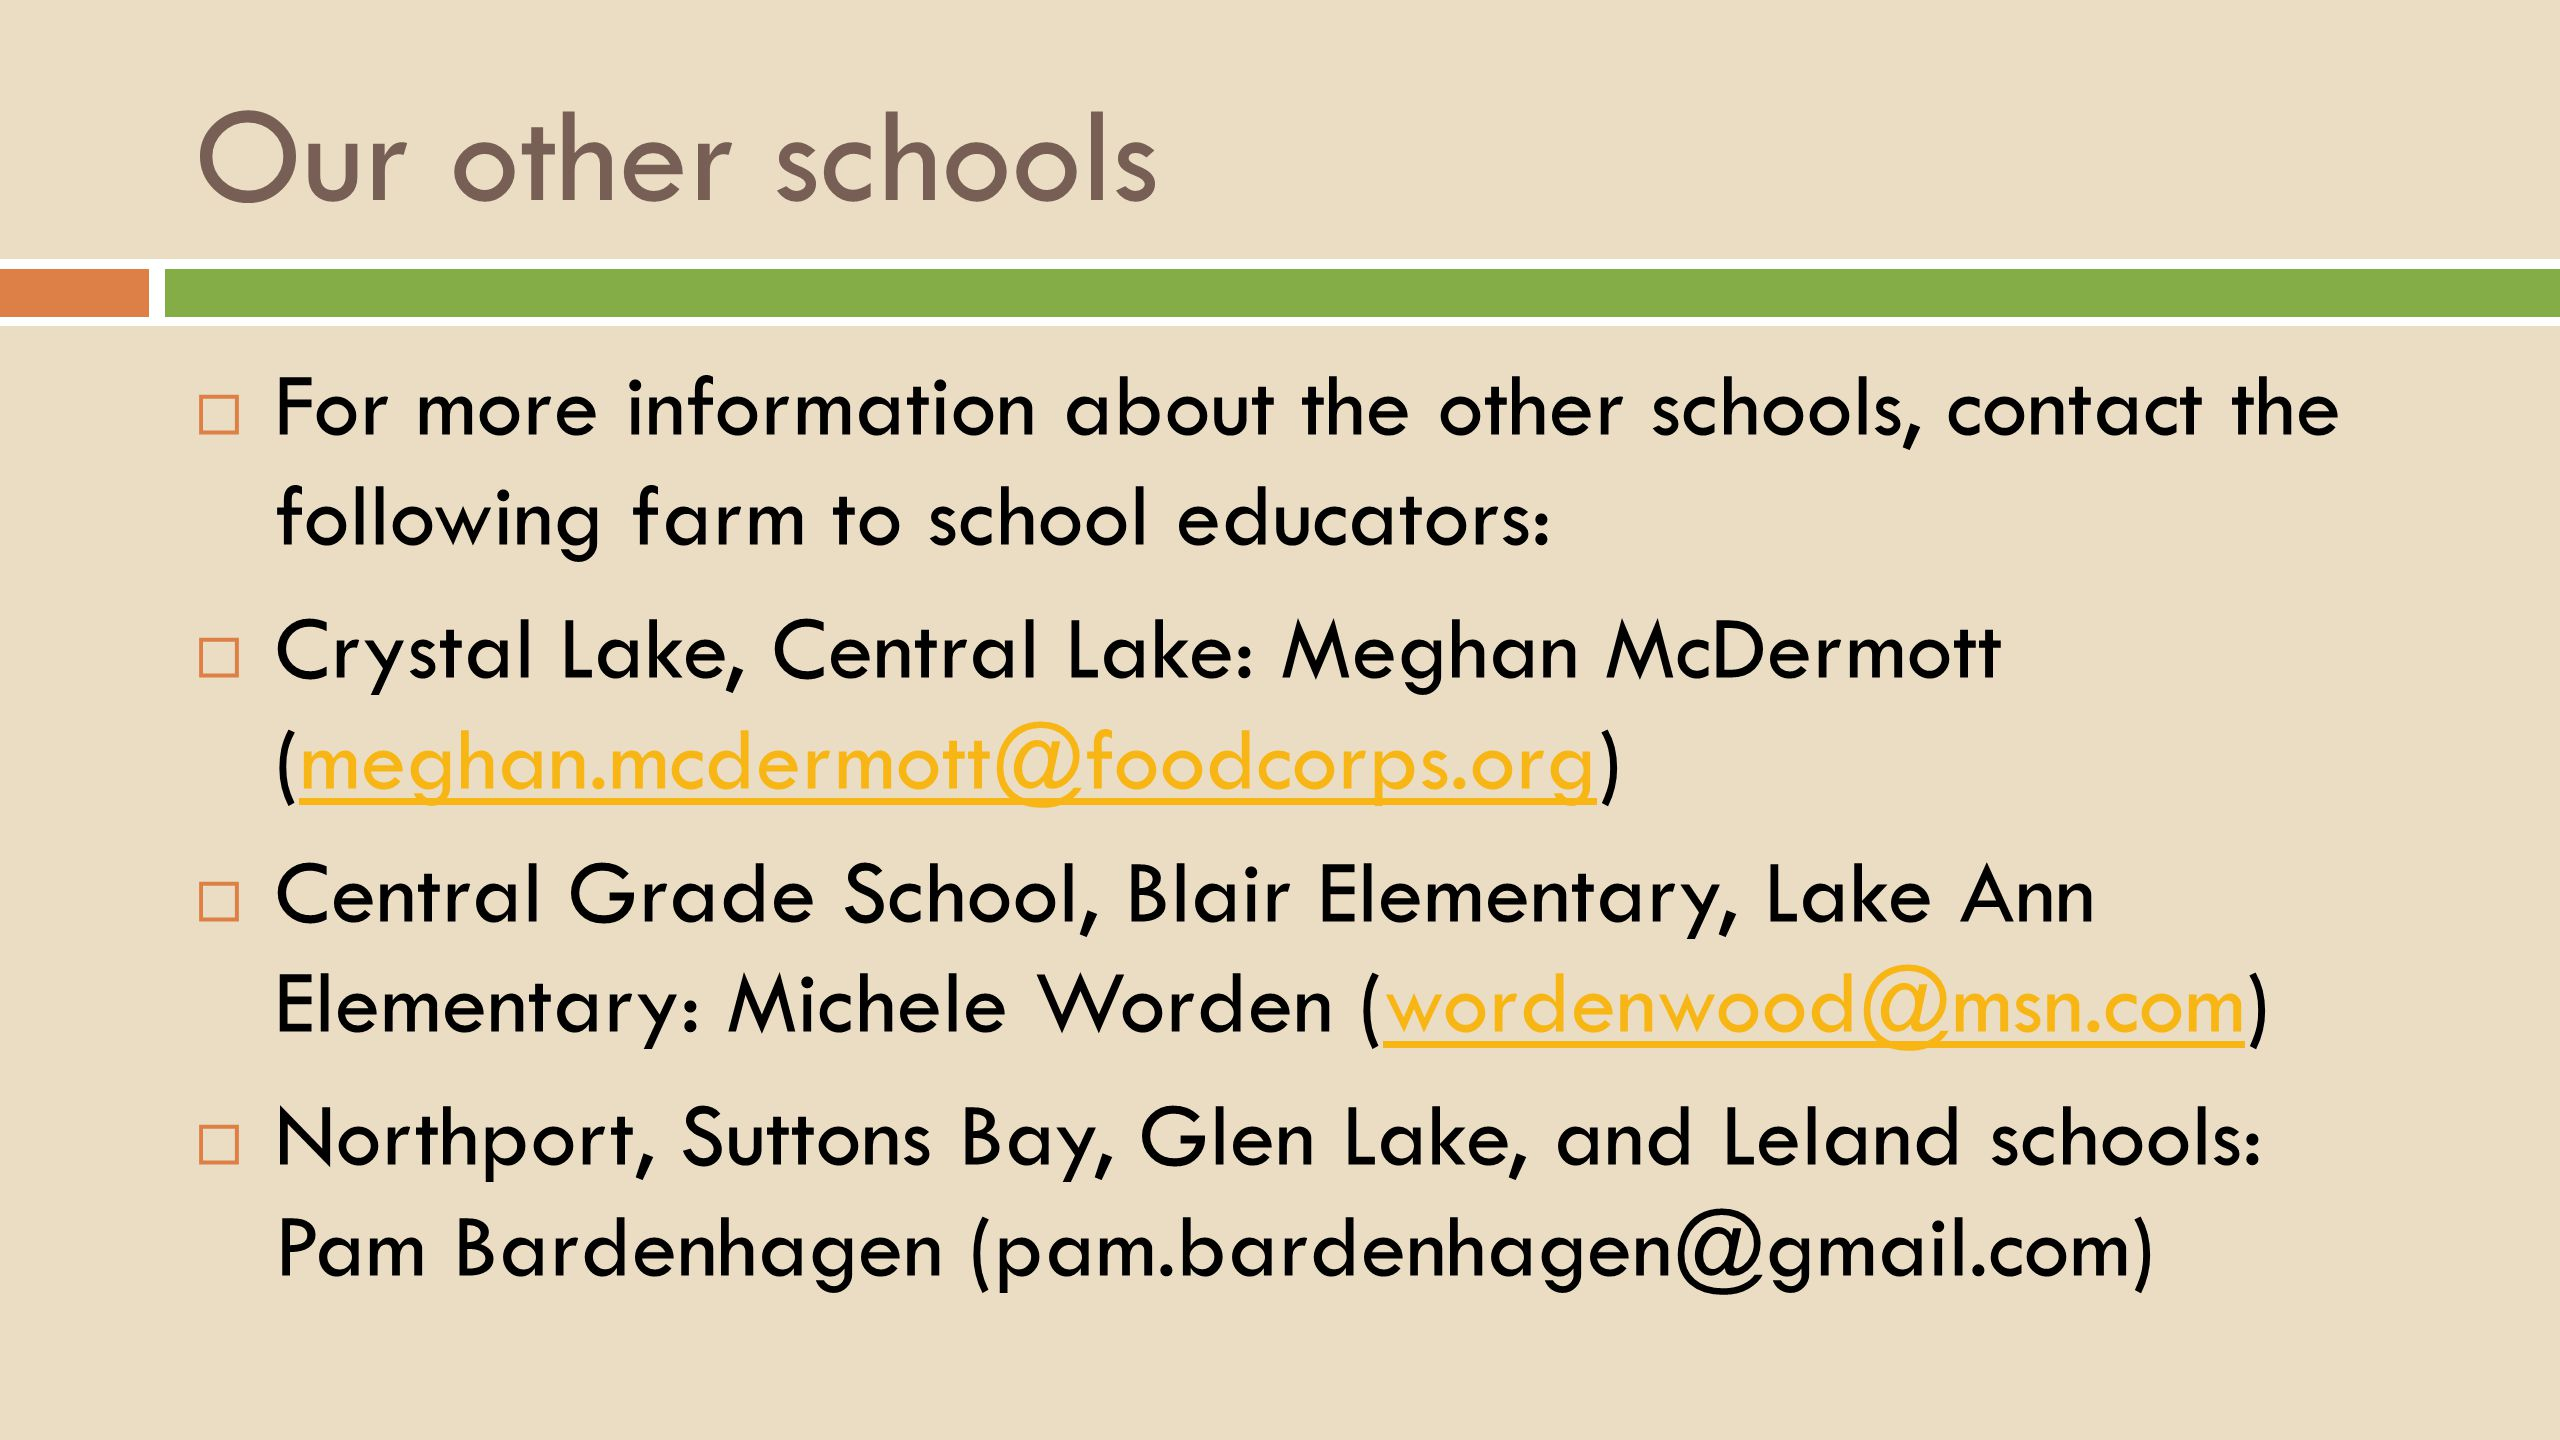 Our other schools  For more information about the other schools, contact the following farm to school educators:  Crystal Lake, Central Lake: Meghan McDermott (meghan.mcdermott@foodcorps.org)meghan.mcdermott@foodcorps.org  Central Grade School, Blair Elementary, Lake Ann Elementary: Michele Worden (wordenwood@msn.com)wordenwood@msn.com  Northport, Suttons Bay, Glen Lake, and Leland schools: Pam Bardenhagen (pam.bardenhagen@gmail.com)